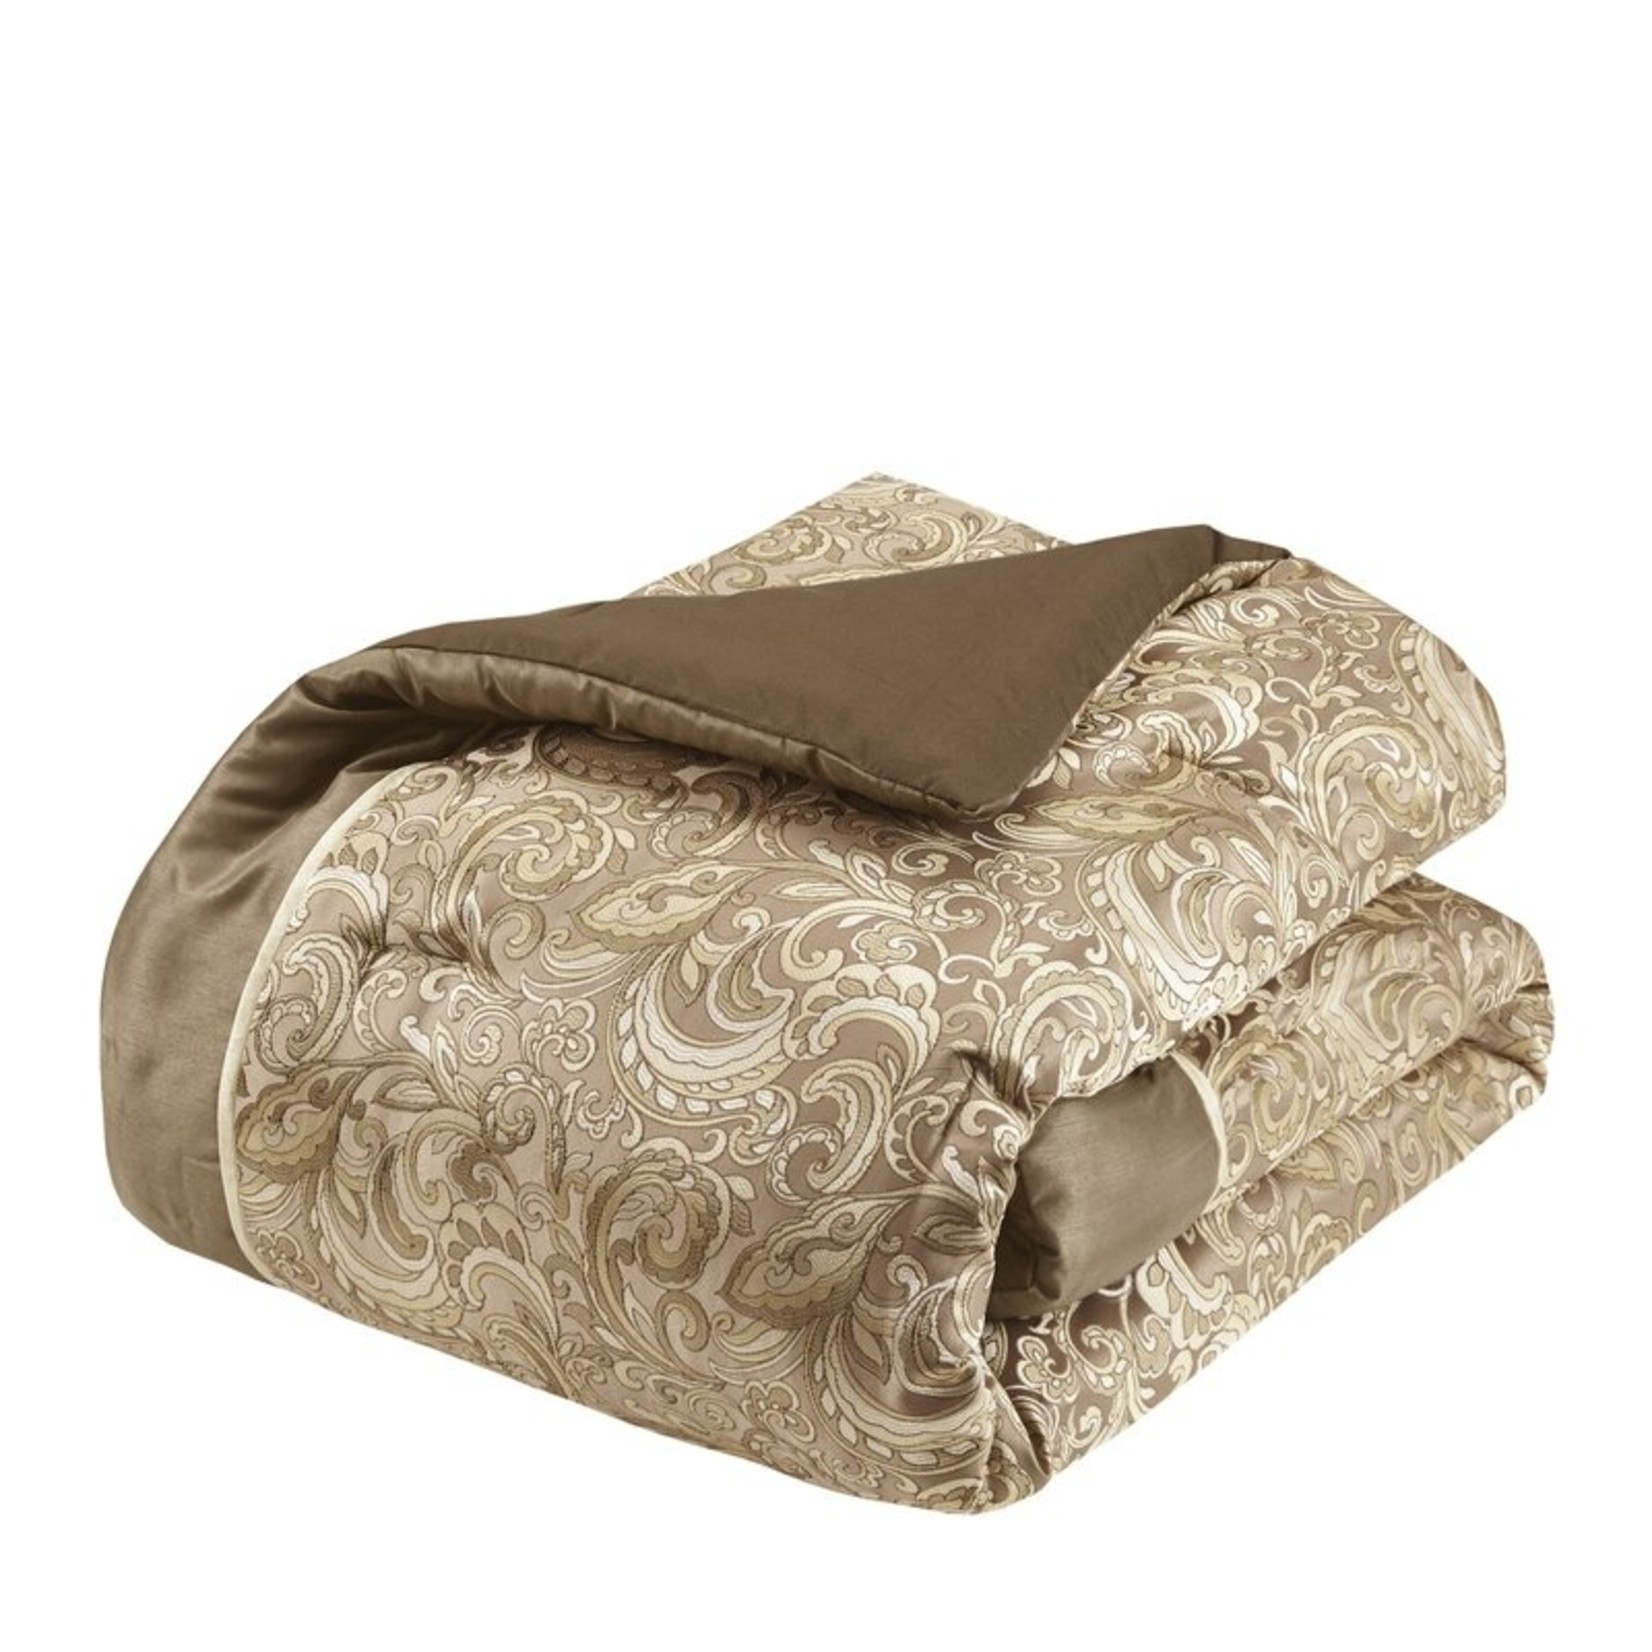 *King - Wightmans Paisley 24 Piece Comforter Bed-in-a-bag - Brown - Final Sale